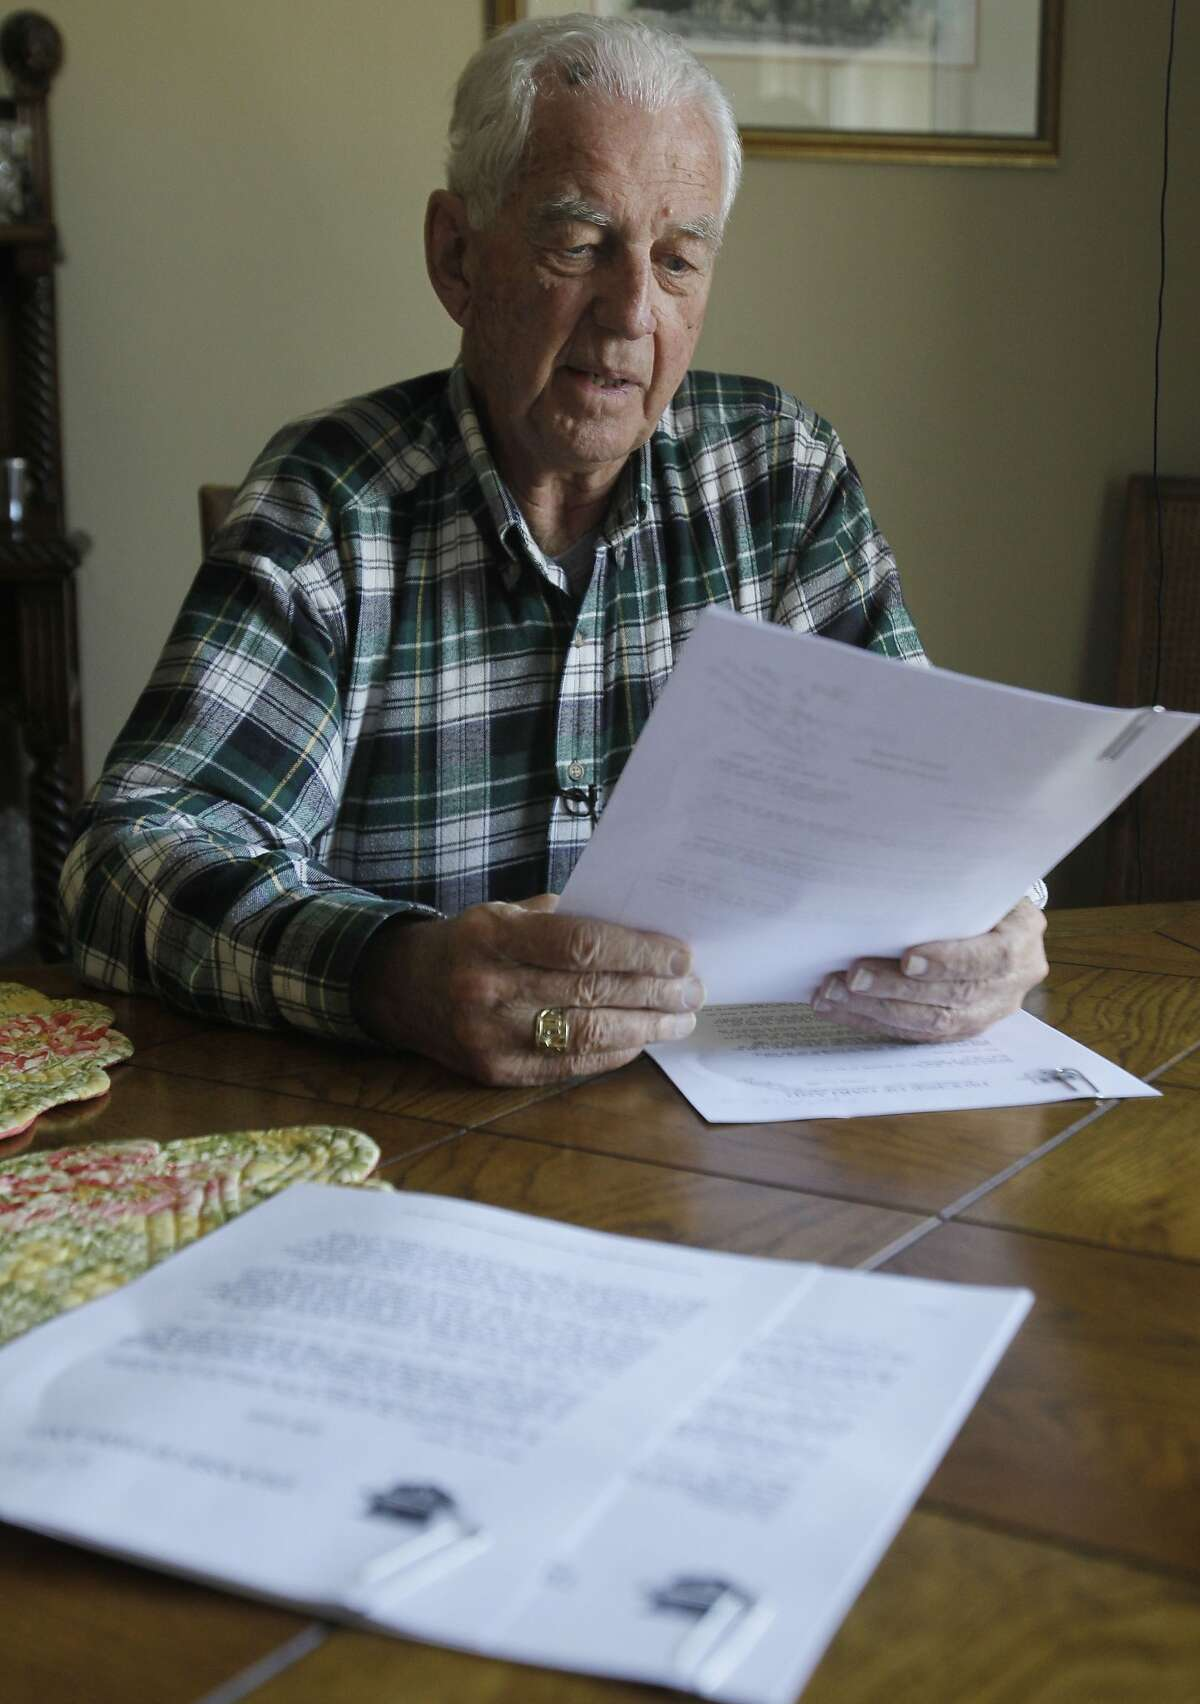 John S. Cummins, former bishop of the diocese of Oakland, Calif., recalls correspondence from Cardinal Joseph Ratzinger regarding troubled priest Stephen Kiesle as he looks over copies of a document brought by the Associated Press to his home in Oakland,